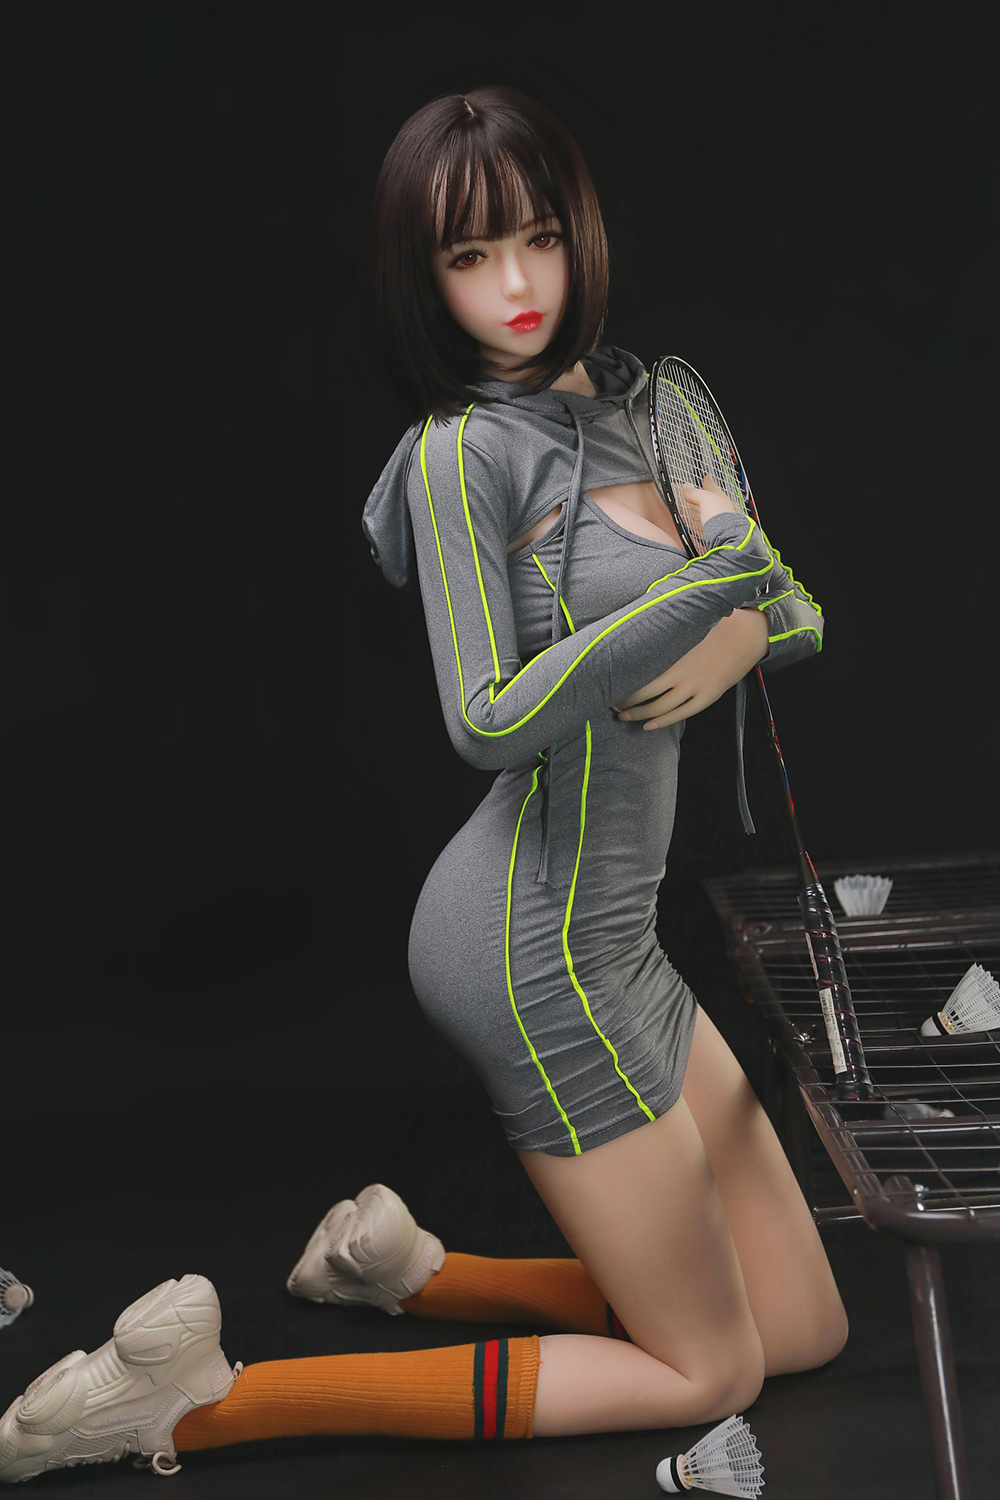 Sex Doll With Adjustable Posture